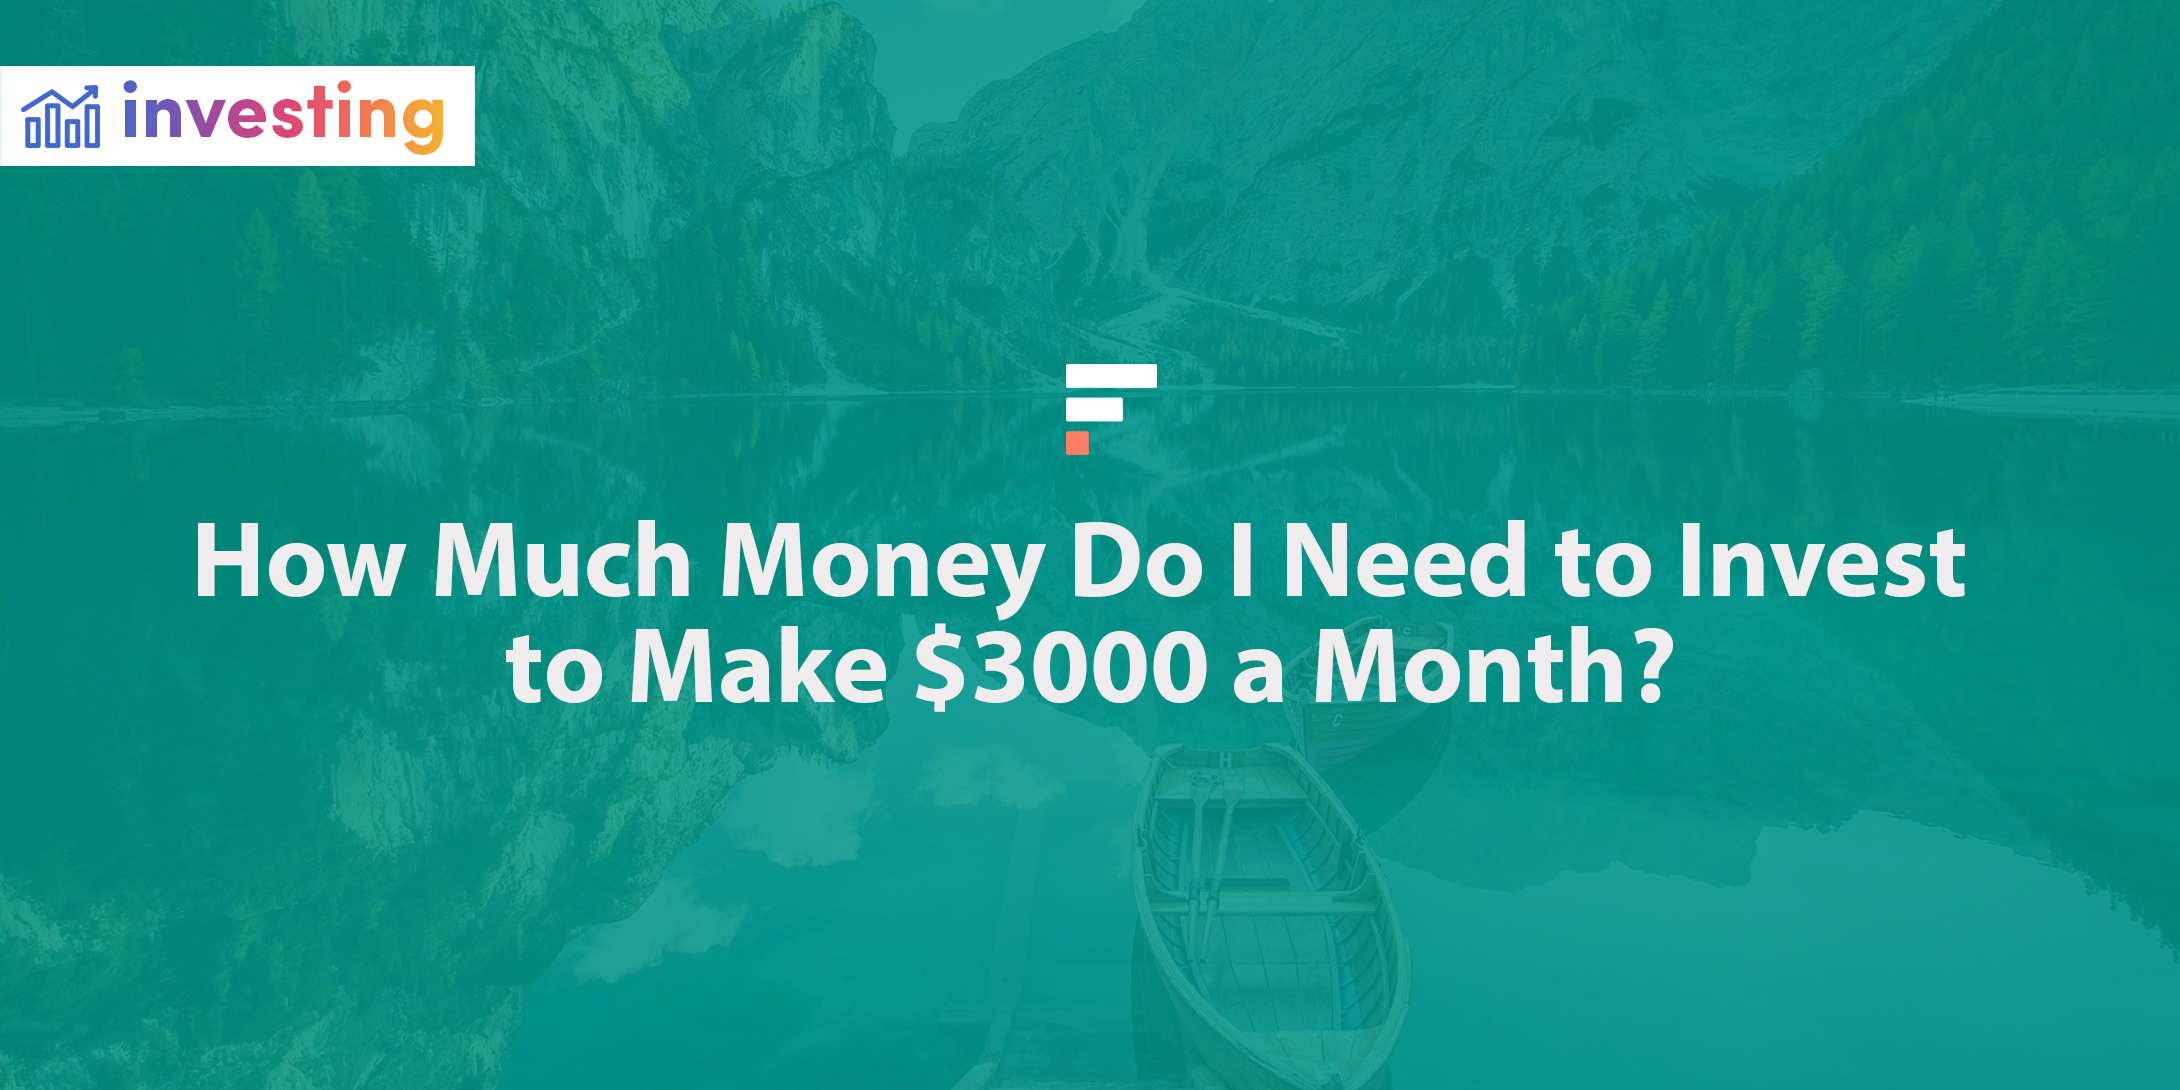 How Much Money Do I Need to Invest to Make $3,000 a Month?